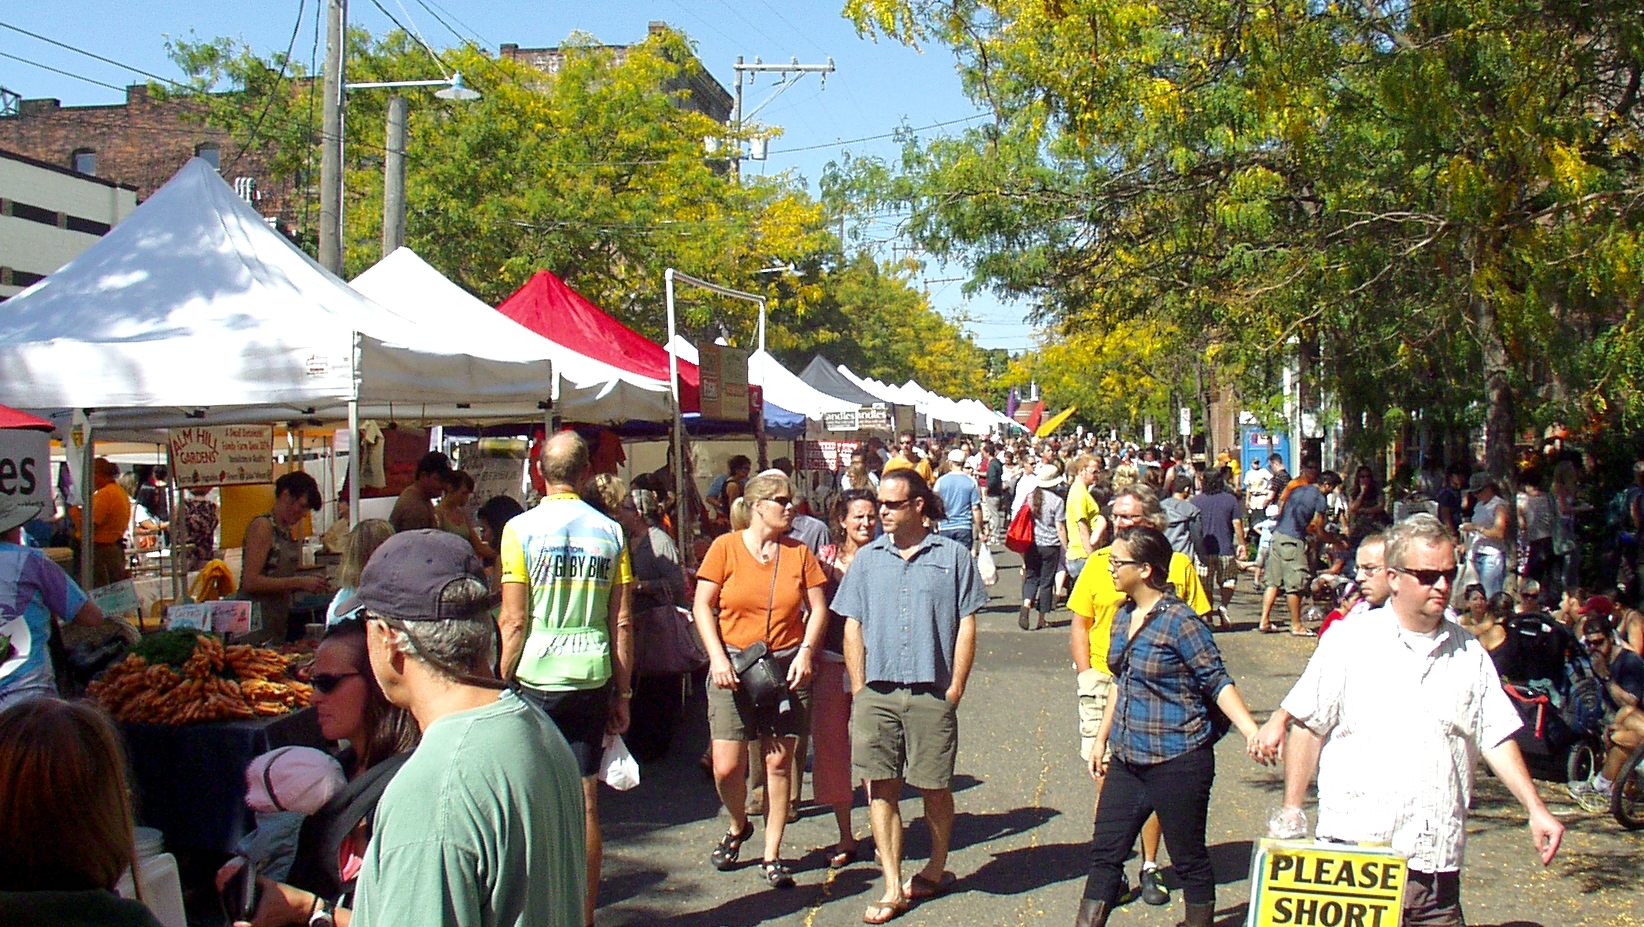 A busy day at Ballard Farmers Market in September. Photo copyright 2009 by Zachary D. Lyons.